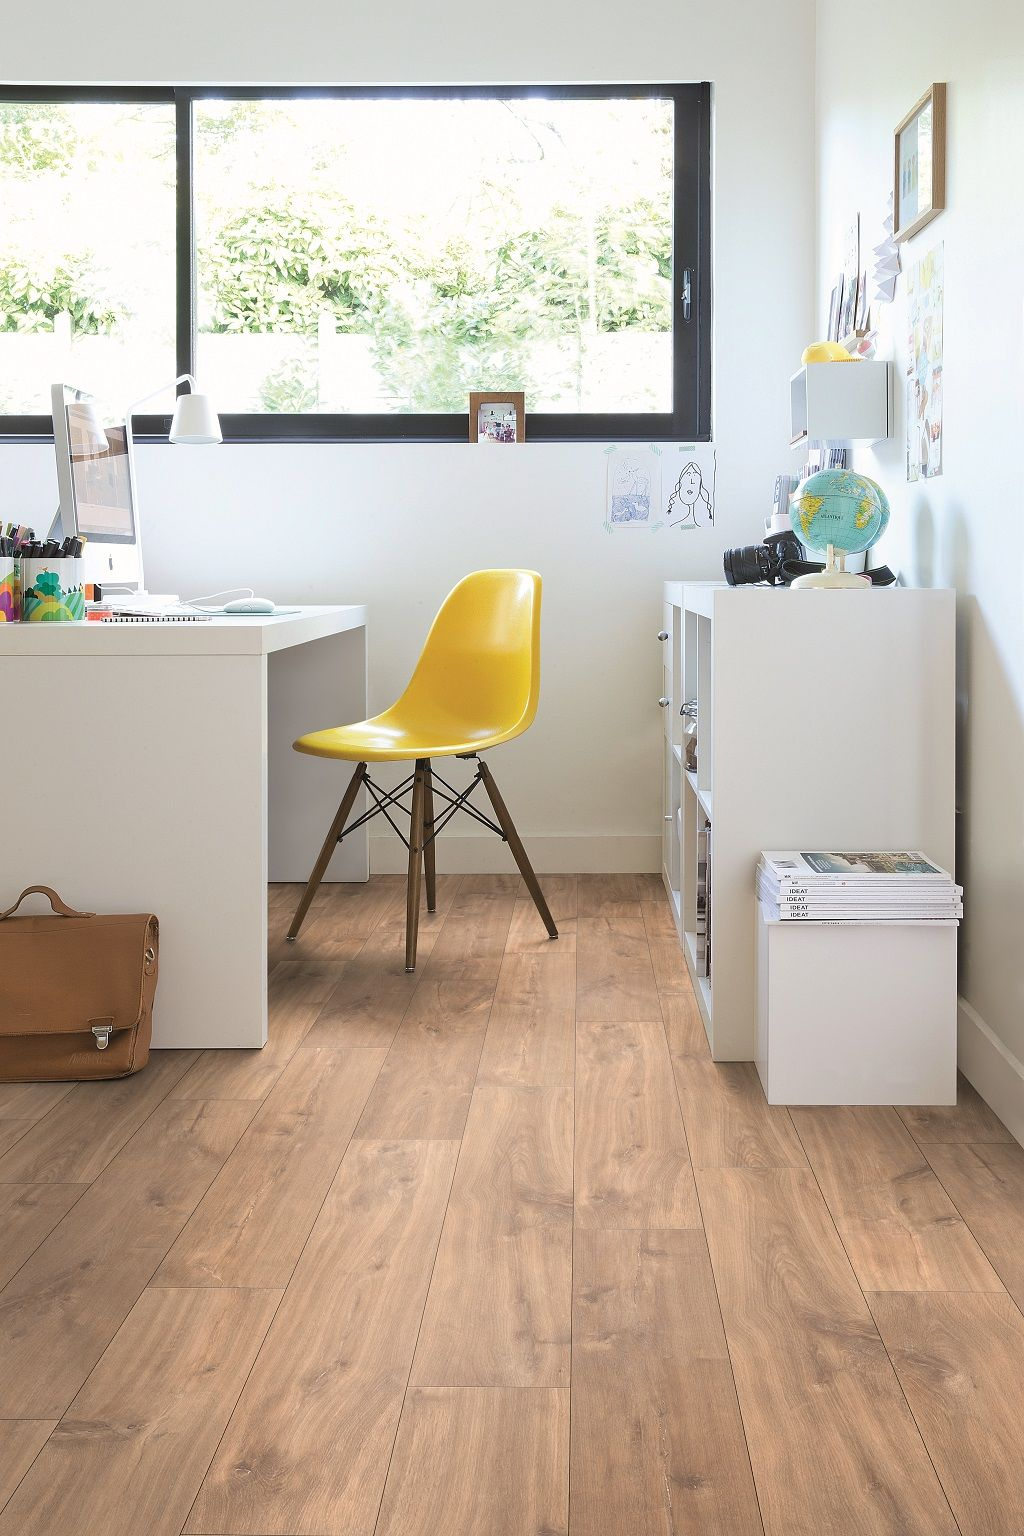 home office flooring. Office Flooring. To Find More Inspiration, Visit Our Website: Https://www.quick-step.co.uk/en-gb/room-types/choose-the-perfect-home-office Home Flooring